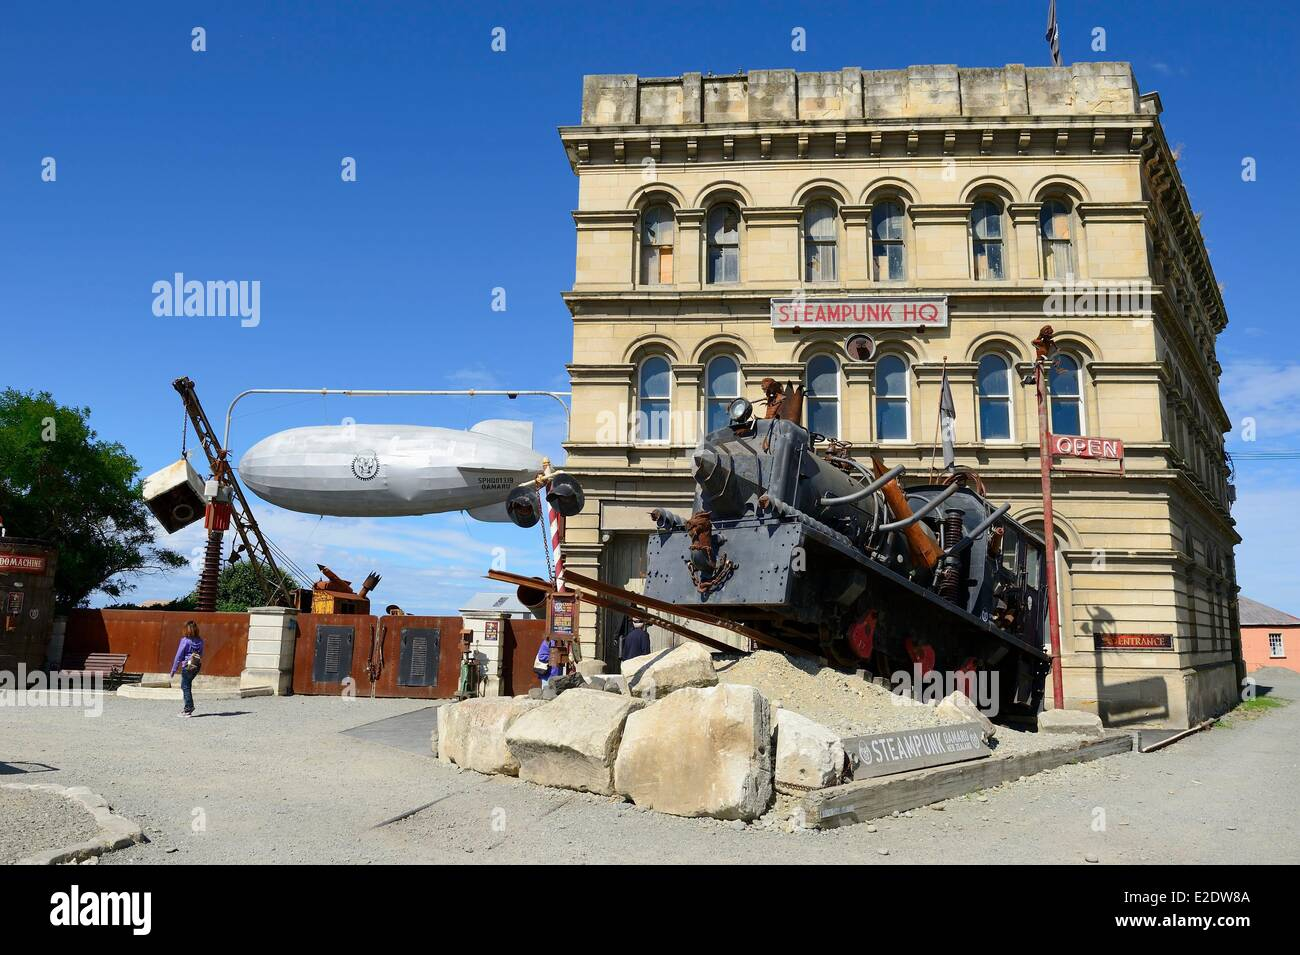 New Zealand, South island, Otago region, Oamaru is an urban center on the seafront with well-preserved old victorian - Stock Image